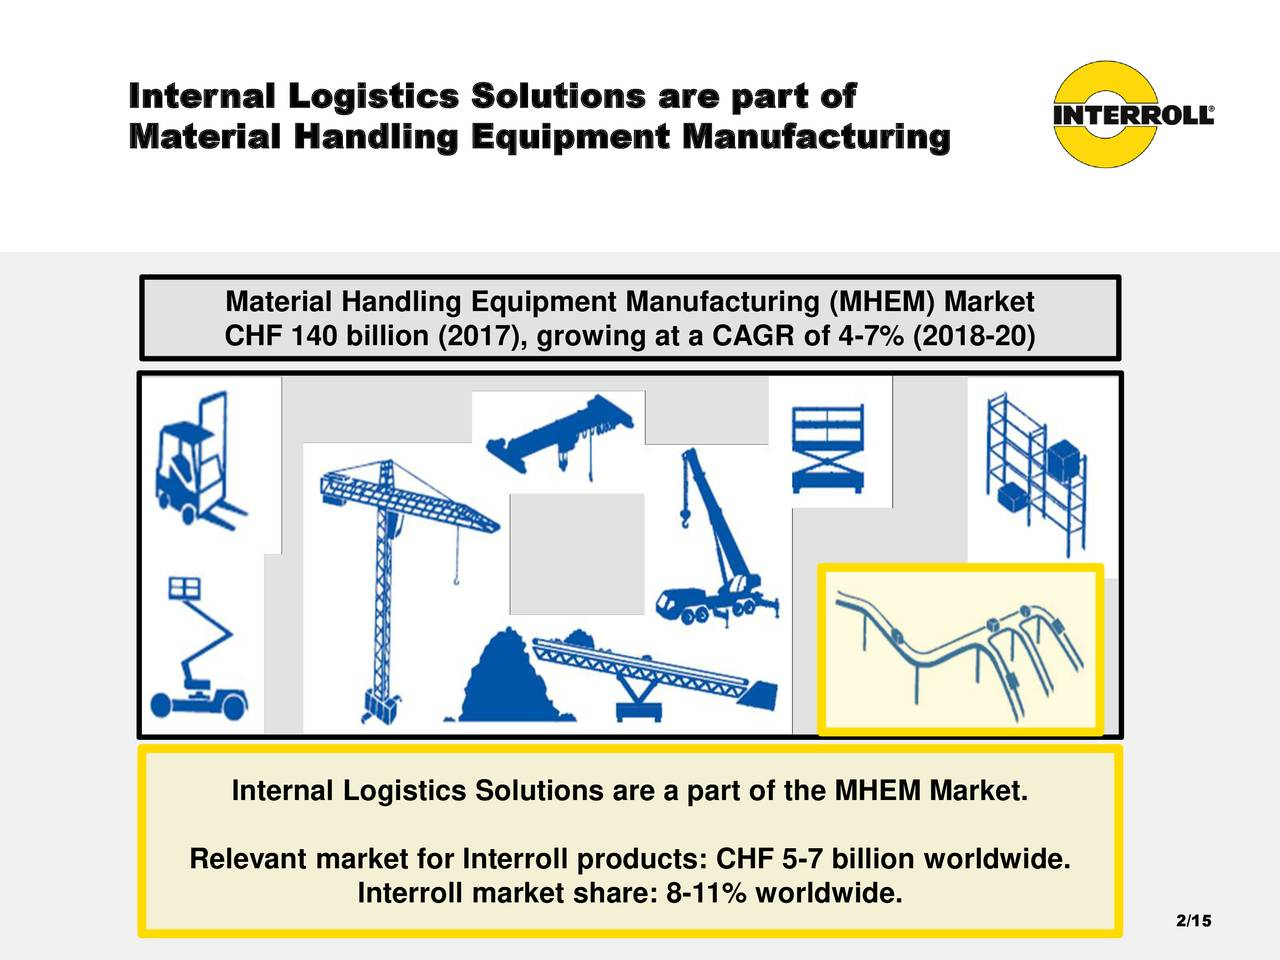 Material Handling Equipment Manufacturing Material Handling Equipment Manufacturing (MHEM) Market CHF 140 billion (2017), growing at a CAGR of 4-7% (2018-20) Internal Logistics Solutions are a part of the MHEM Market. Relevant market for Interroll products: CHF 5-7 billion worldwide. Interroll market share: 8-11% worldwide. 2/15